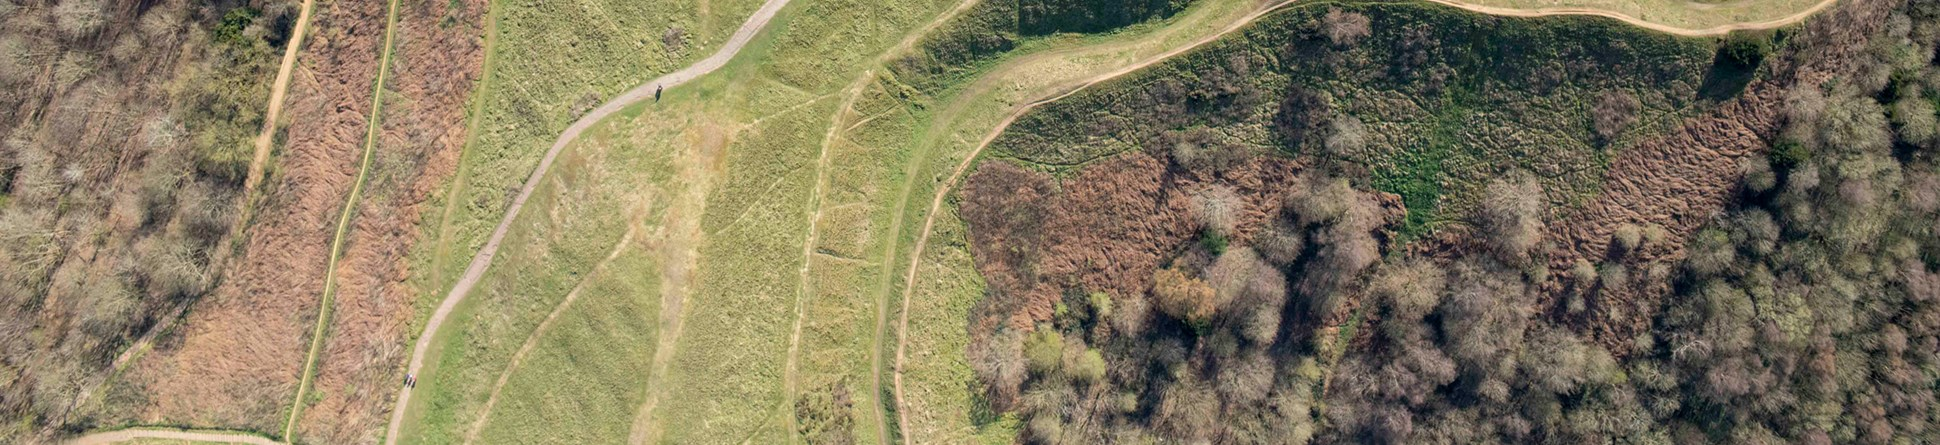 An aerial photograph of a hillfort.